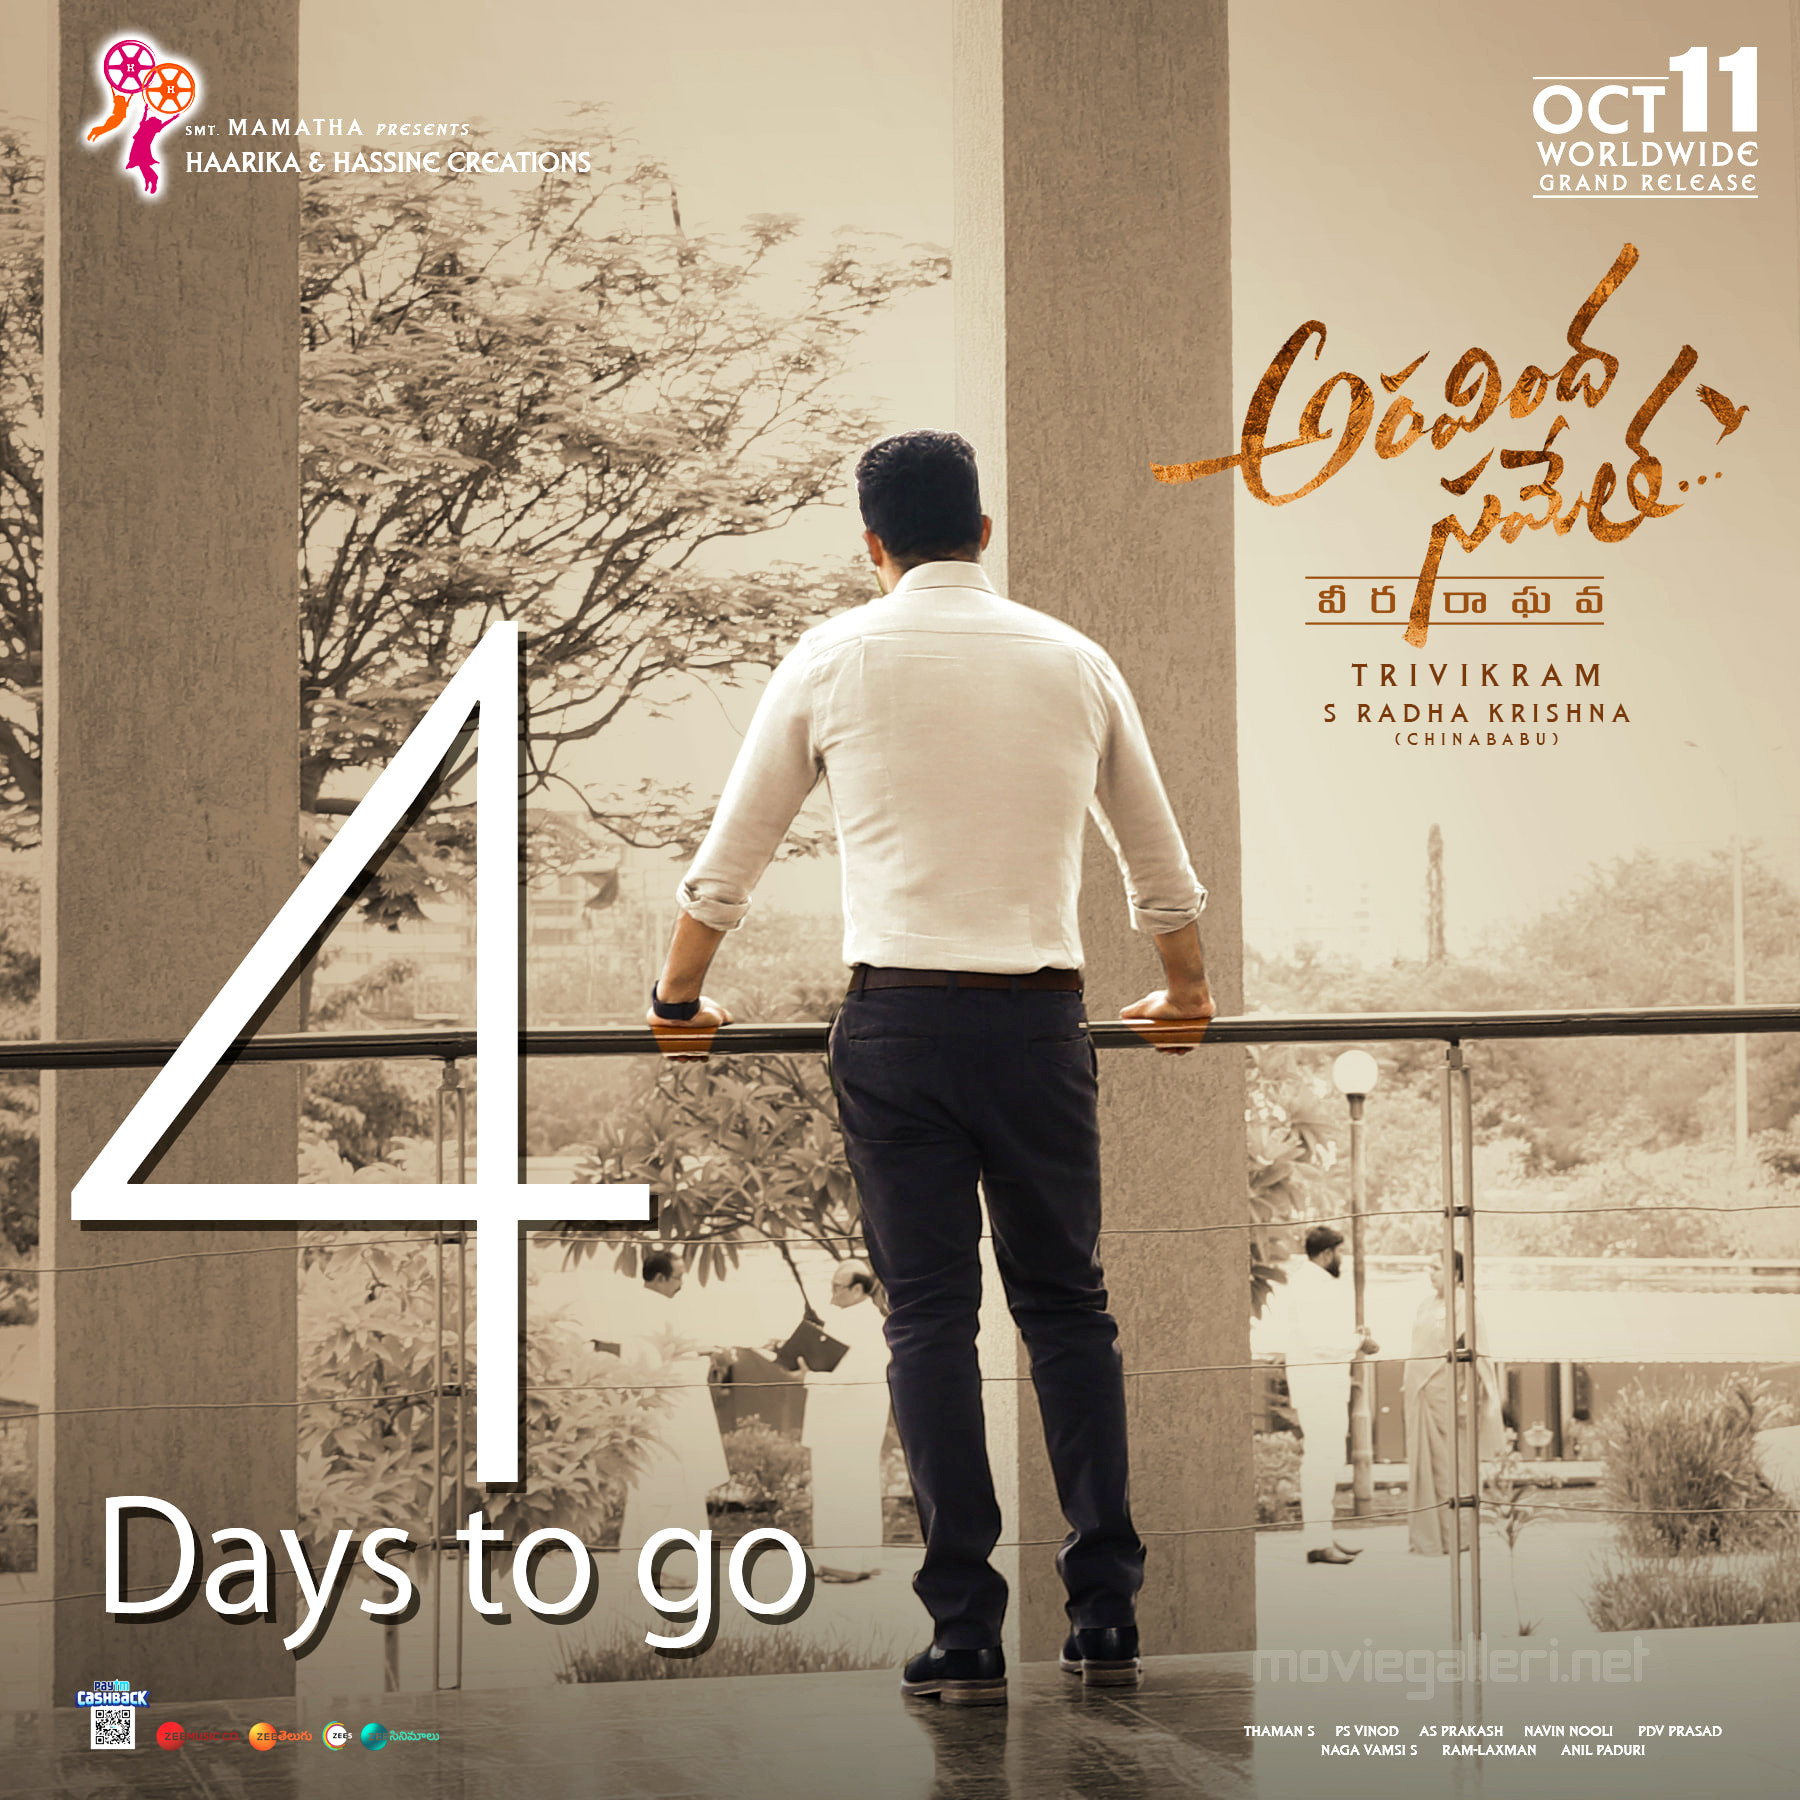 Jr NTR Aravinda Sametha Veera Raghava 4 Days to Go Wallpaper